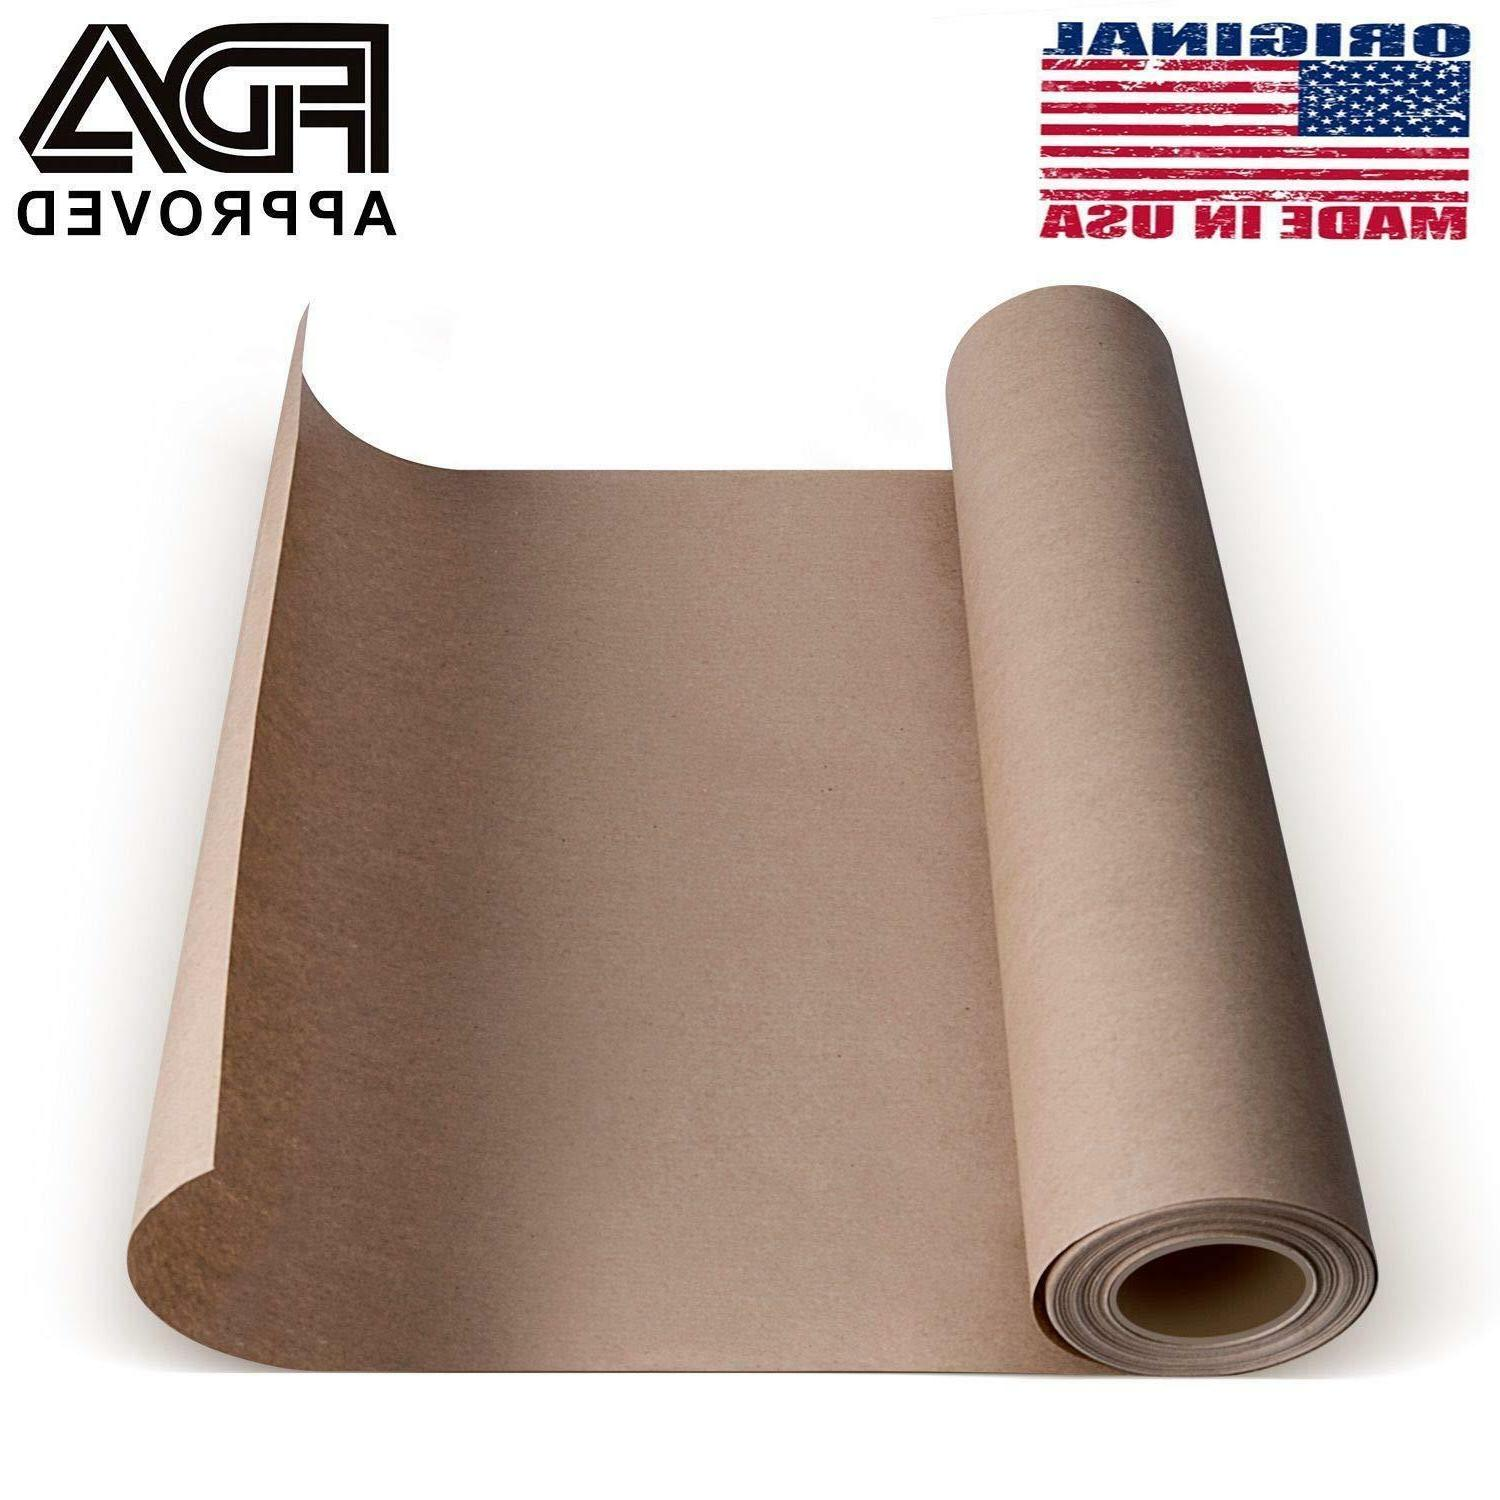 Butcher Kraft Paper Roll 18 x 175 Wrapping Paper Food BBQ Me